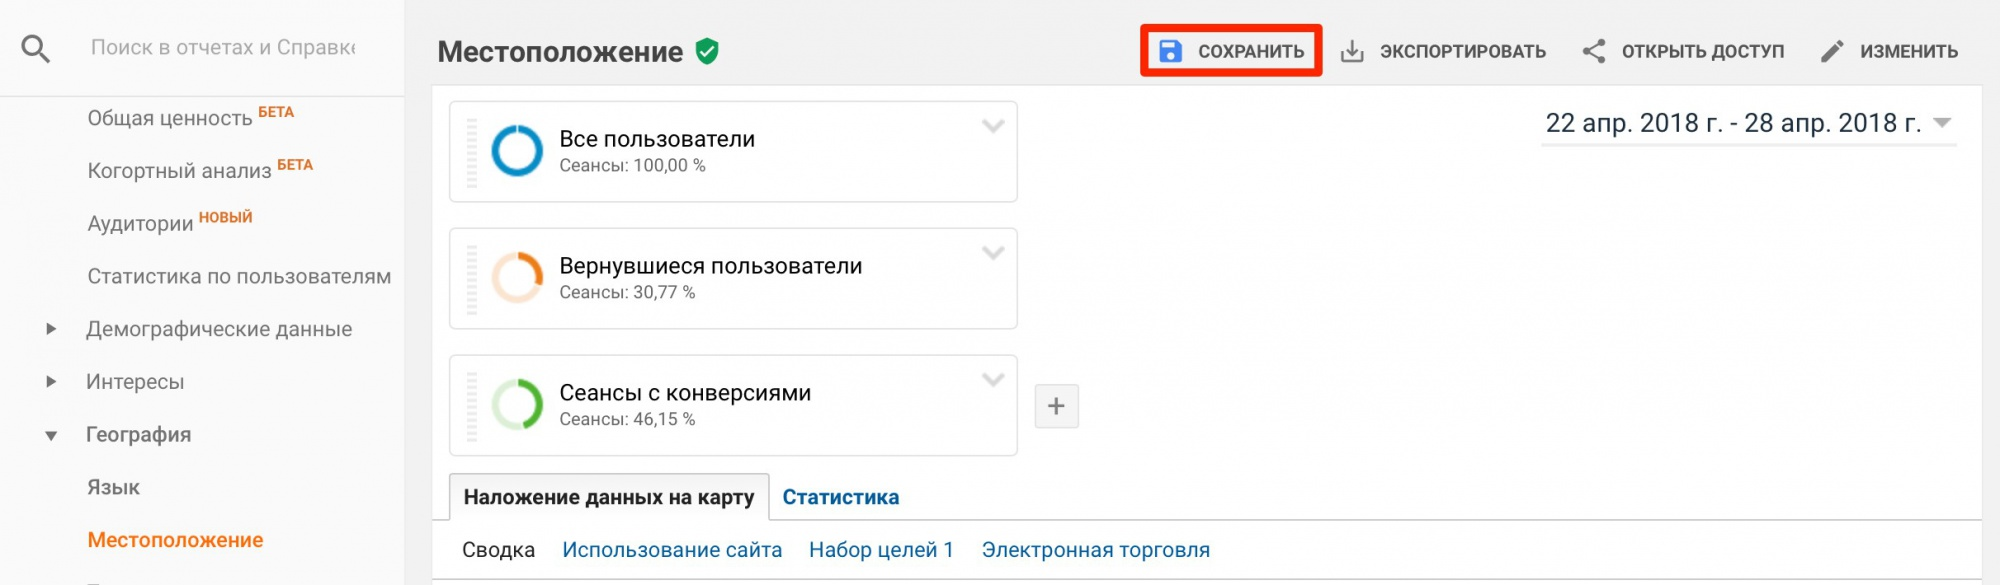 Создание сохраненных отчетов в Google Analytics